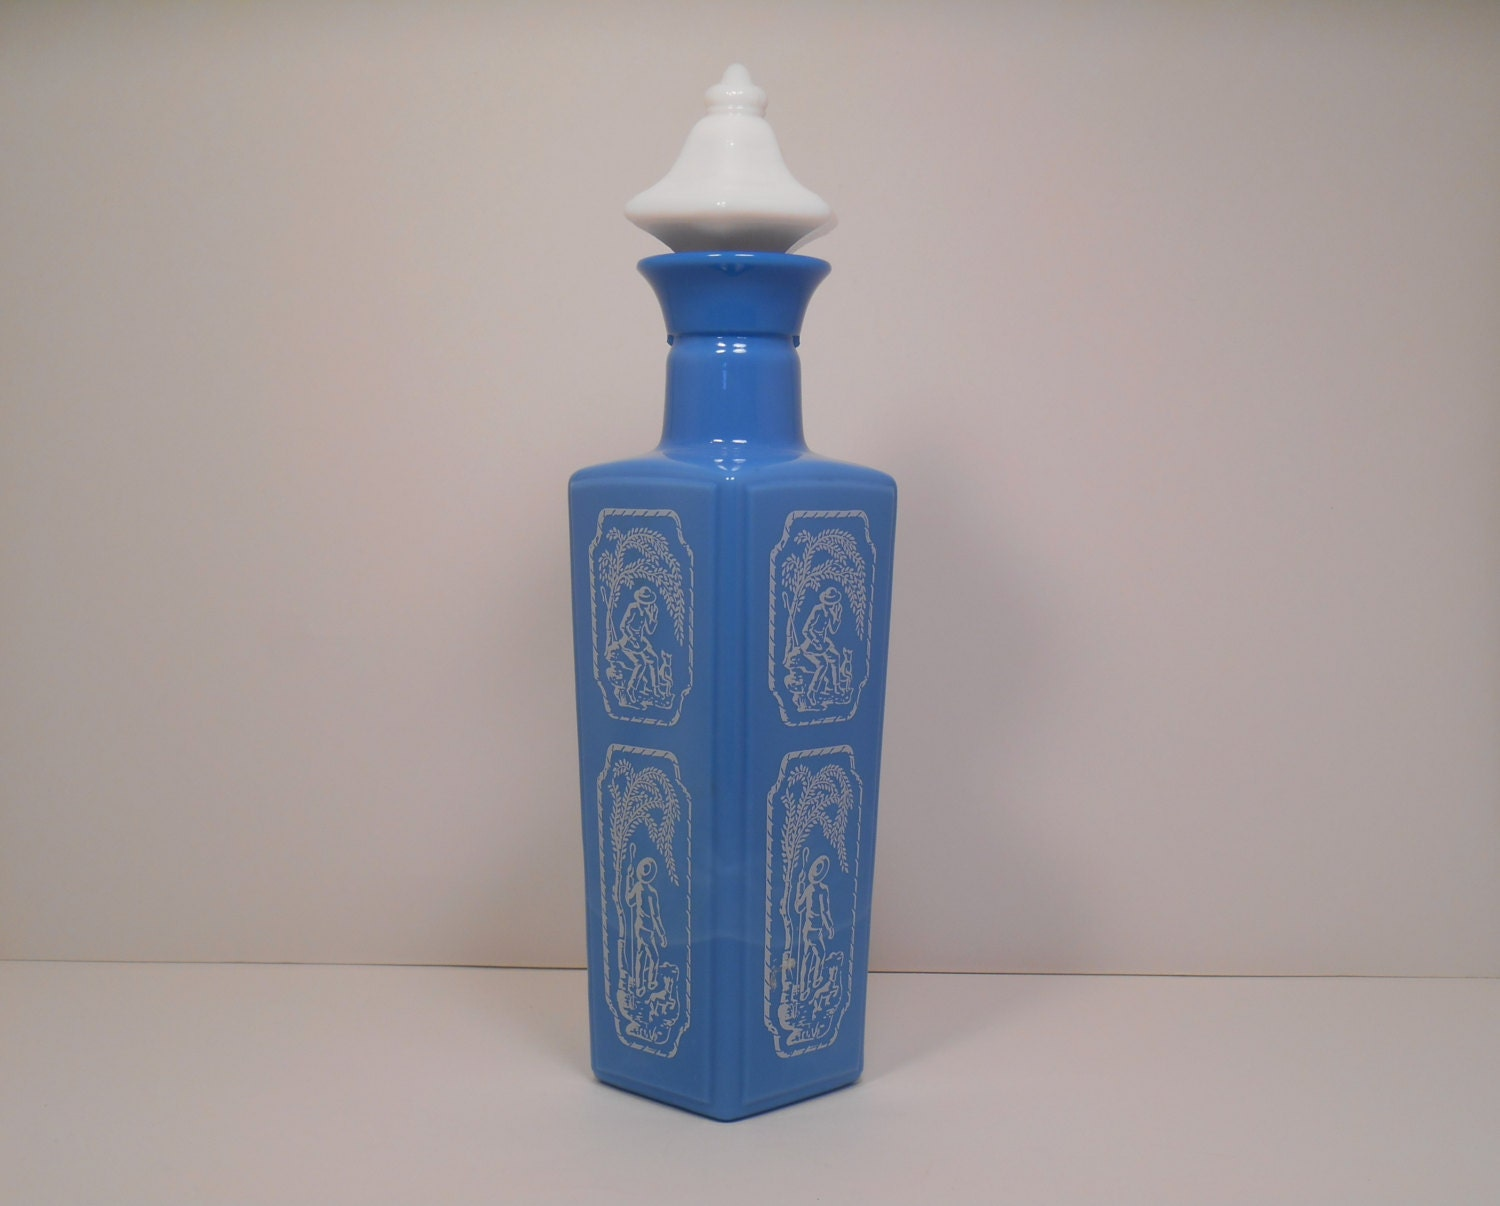 Jim Beam Collectible Decanter Bottle 1965 Beams Choice Blue